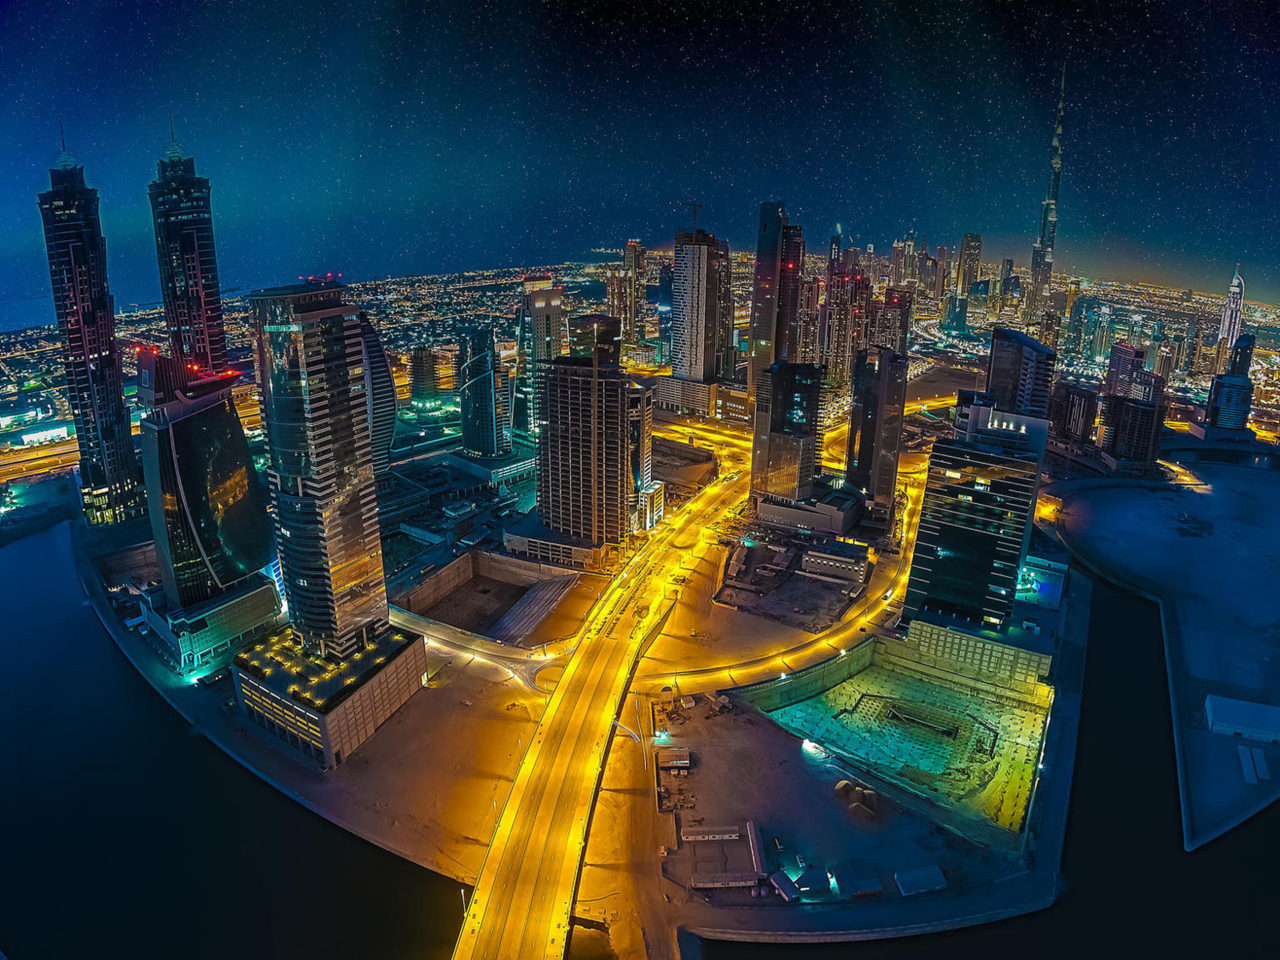 Dubai Skyline Aerial Images Of Cities With Modern